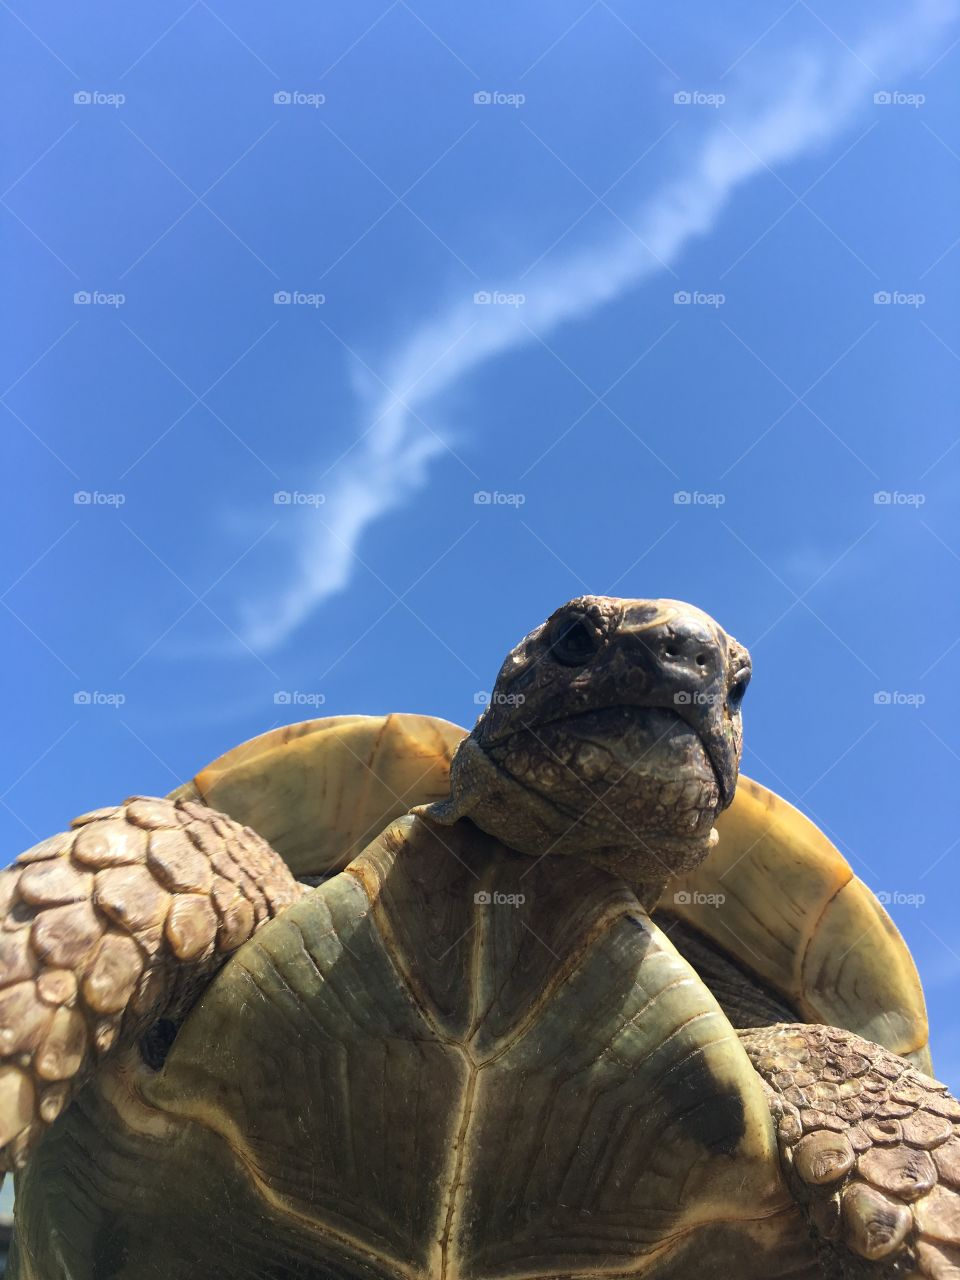 Turtle in the sky